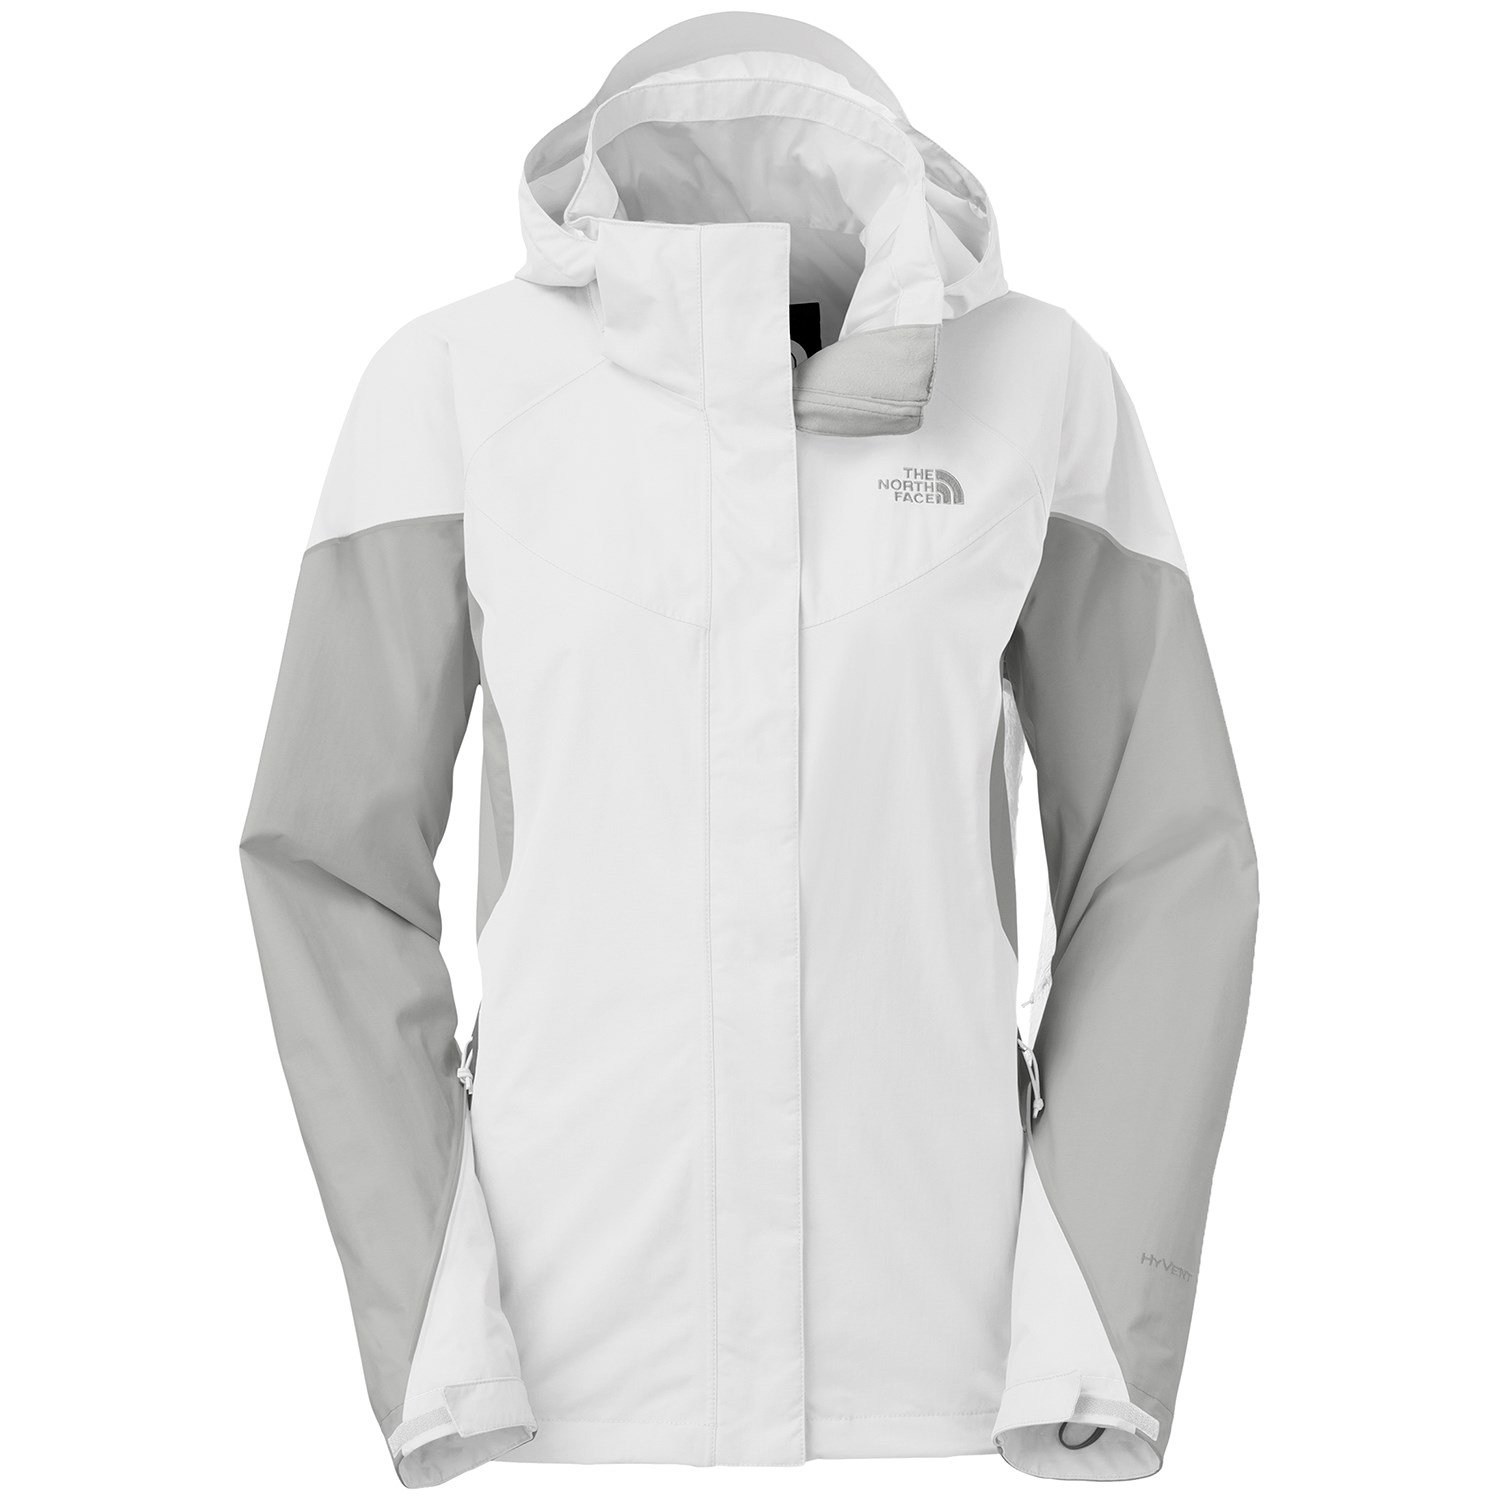 570cb5588 The North Face Boundary Triclimate® Jacket - Women's